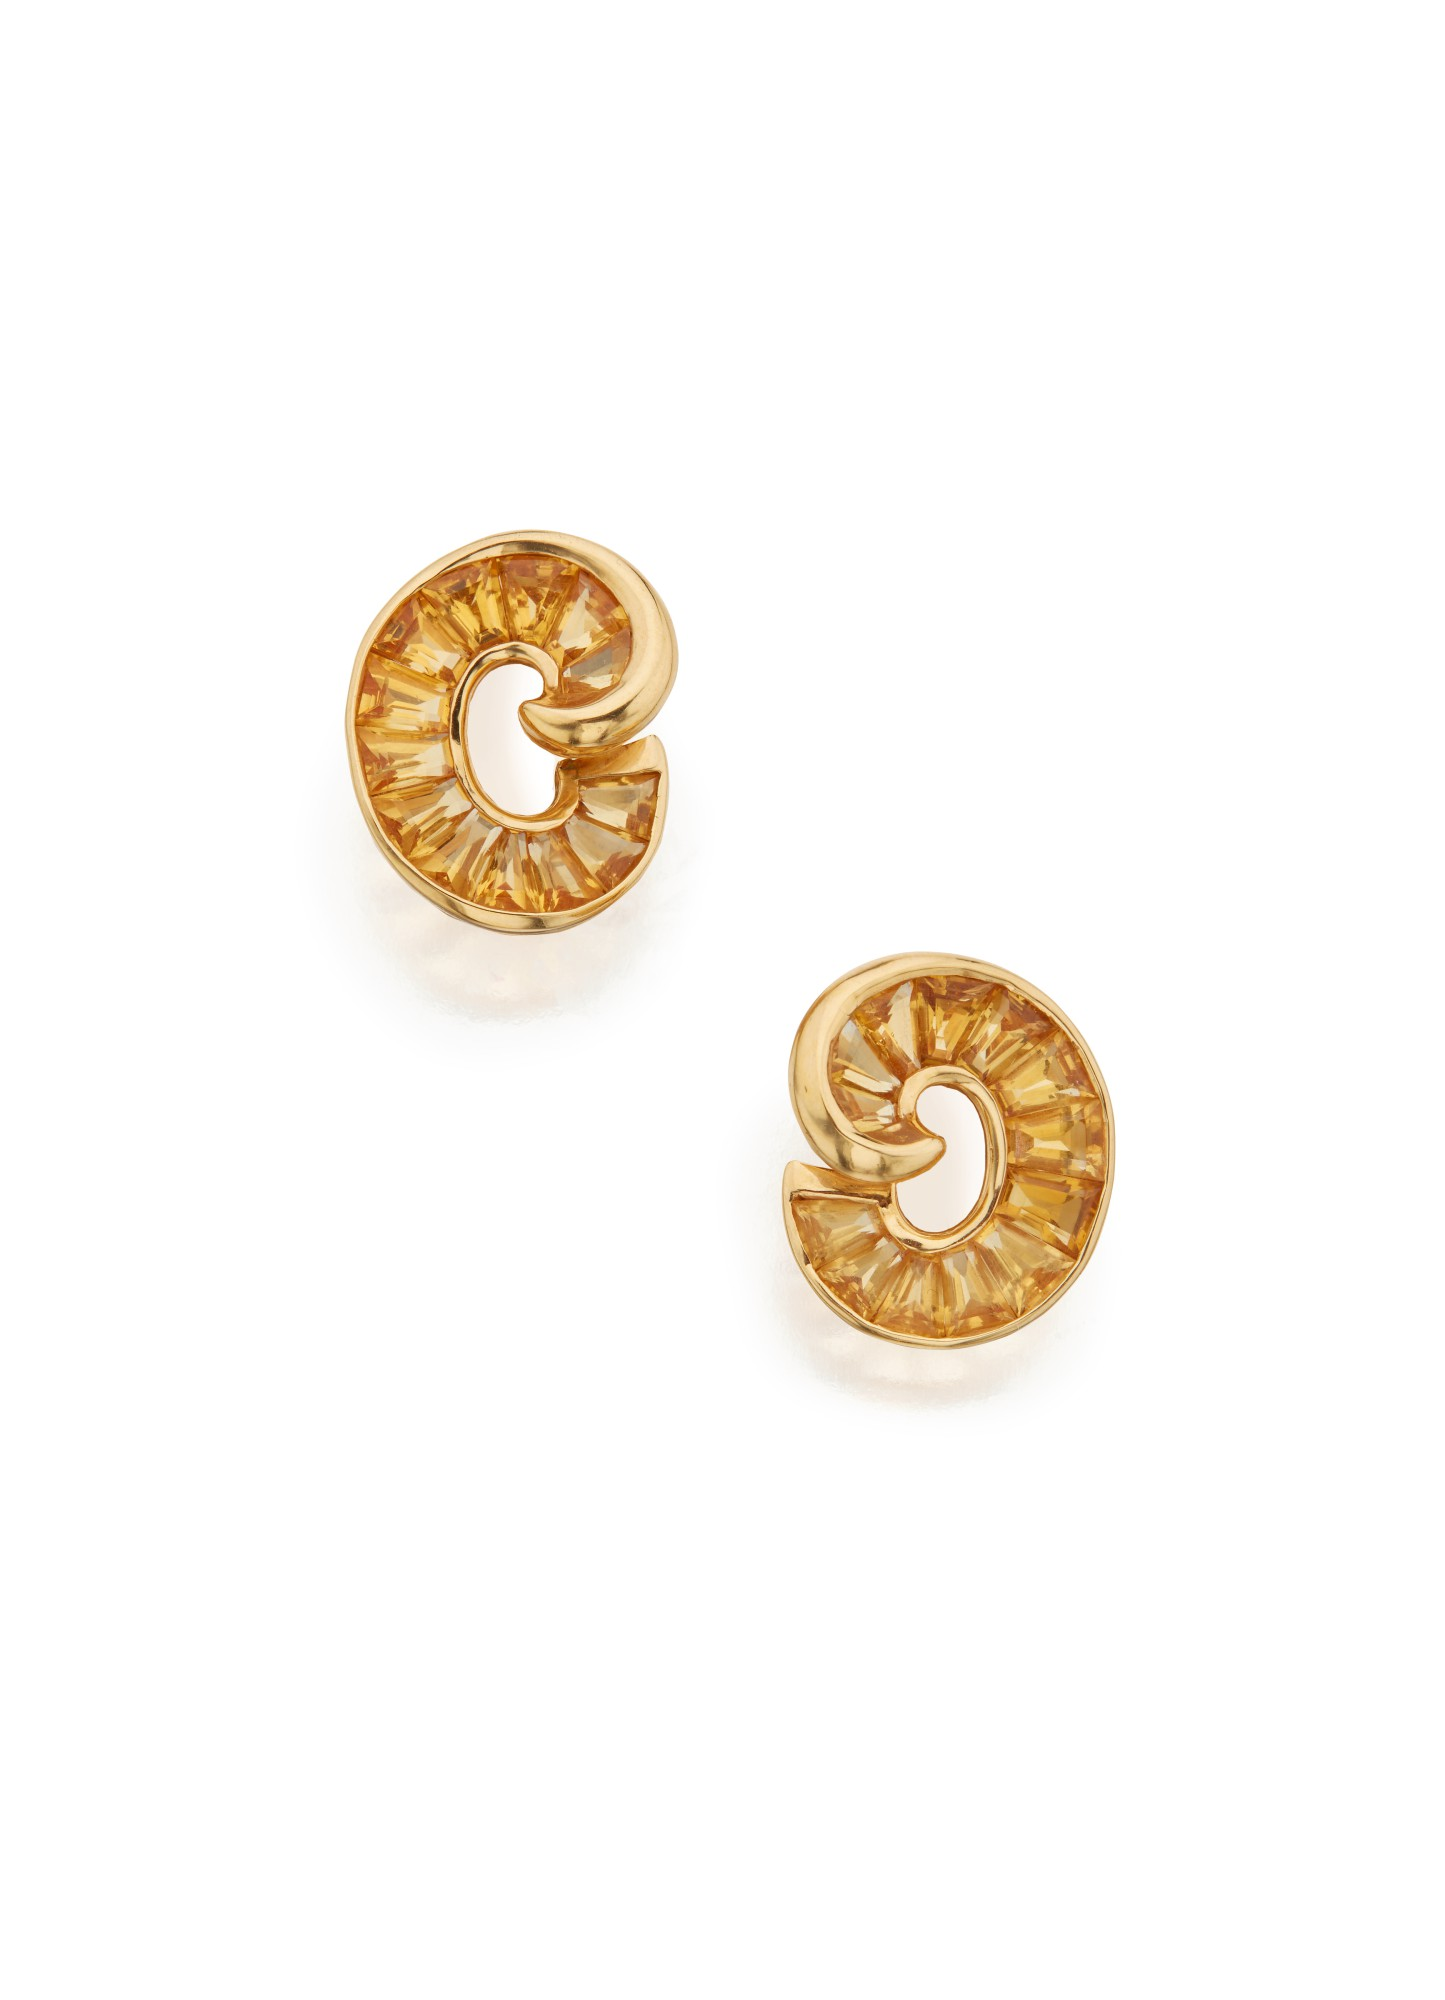 PAIR OF GOLD AND CITRINE EARCLIPS, VERDURA